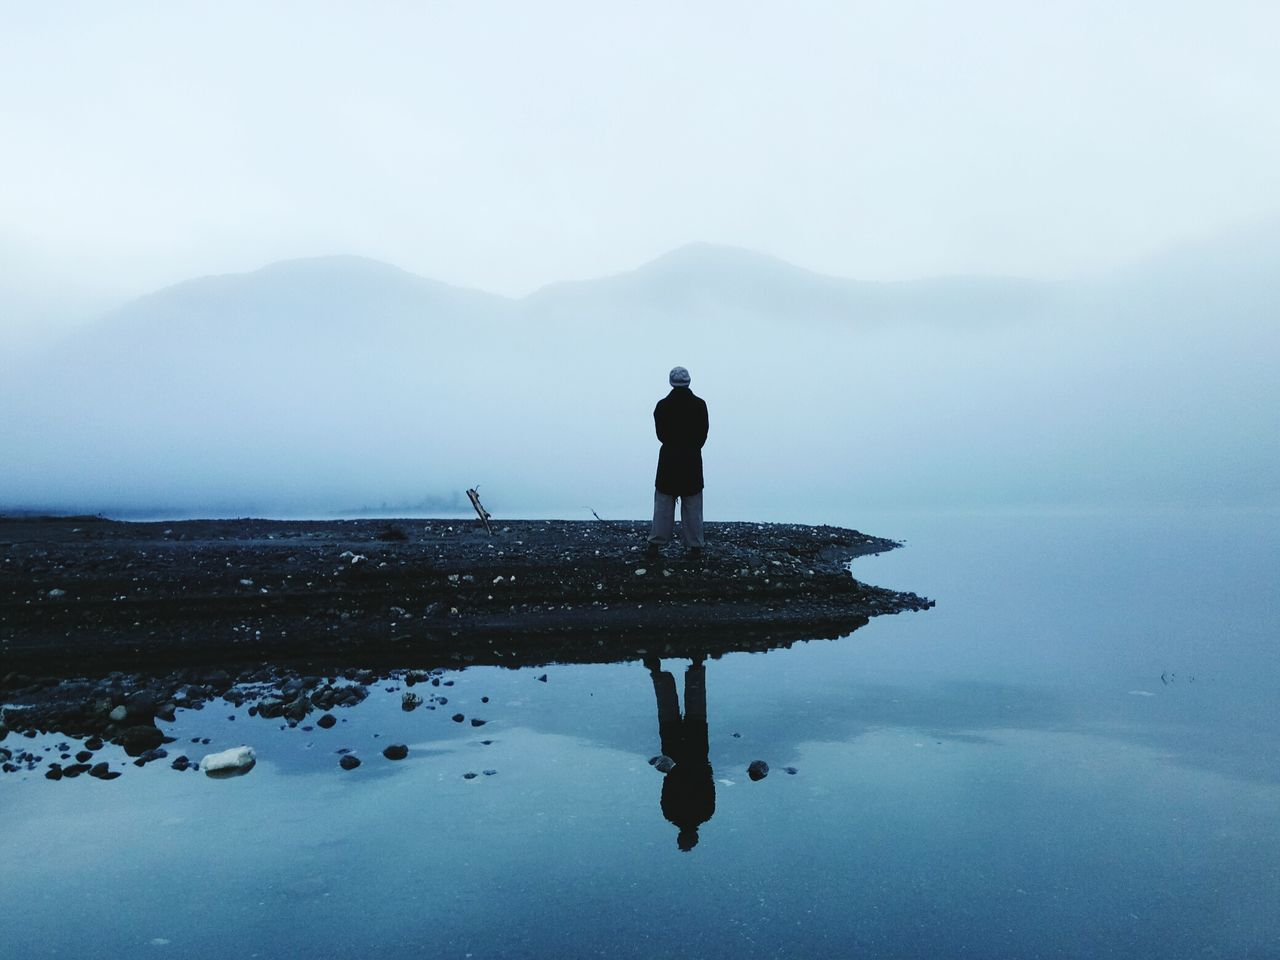 One Person Reflection One Man Only Fog Lake Mountain Water Full Length Outdoors Standing Photographing Nature Reserve Reflection_collection 3XSPUnity Cloud - Sky Eyem Best Shots Nature_collection Eyem Nature Lover Mountain Range Tranquil Scene EyeEm Best Shots - Landscape EyeEmNewHere Beauty In Nature